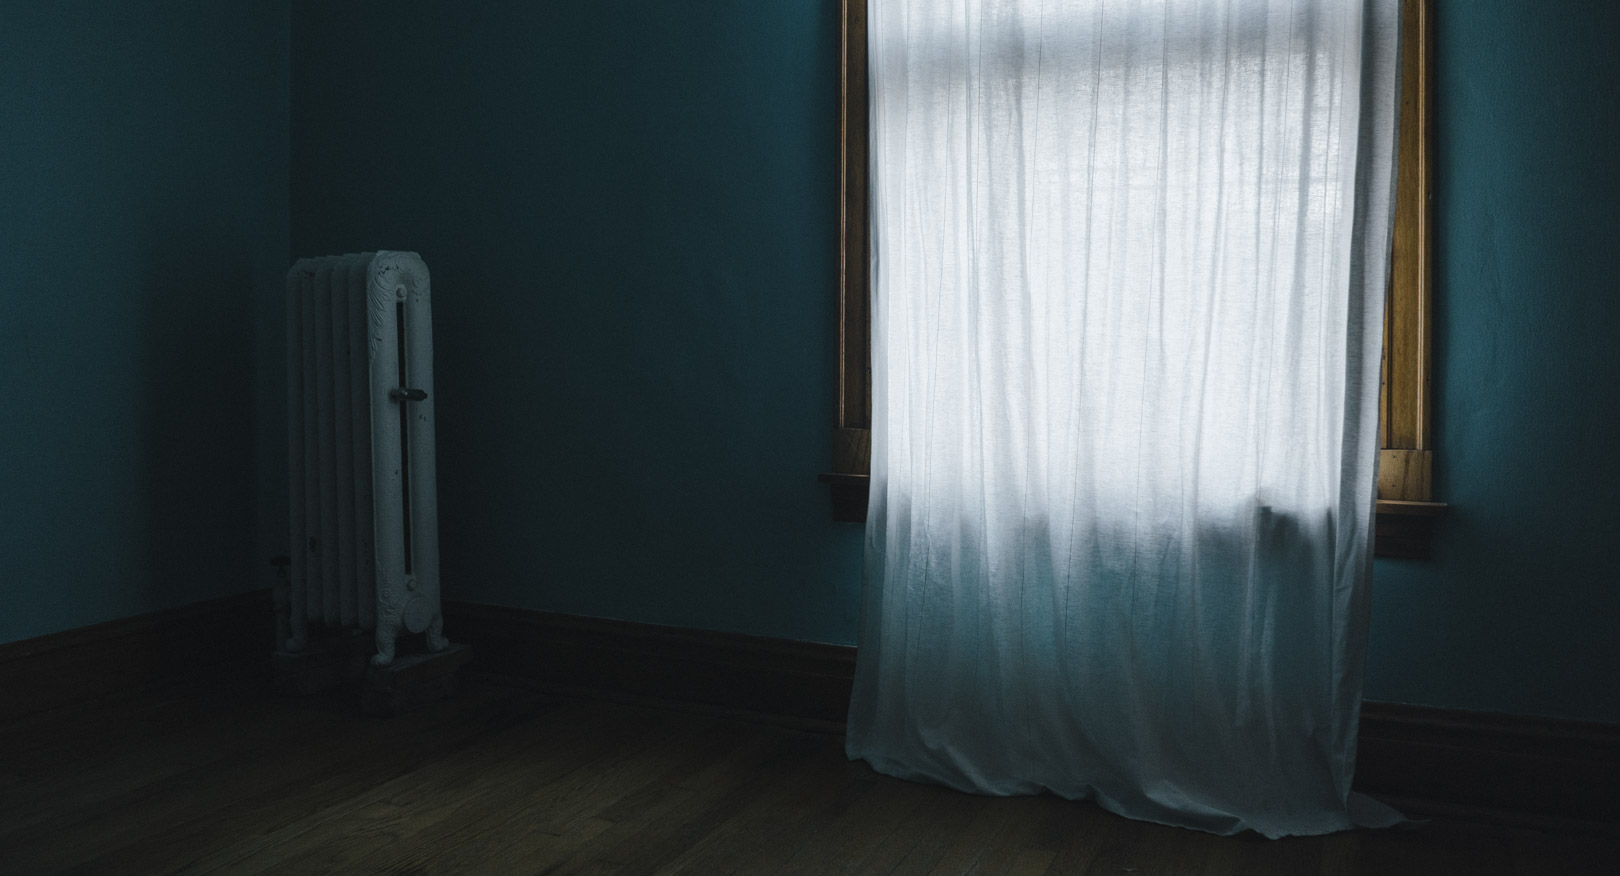 window_radiator_bedroom